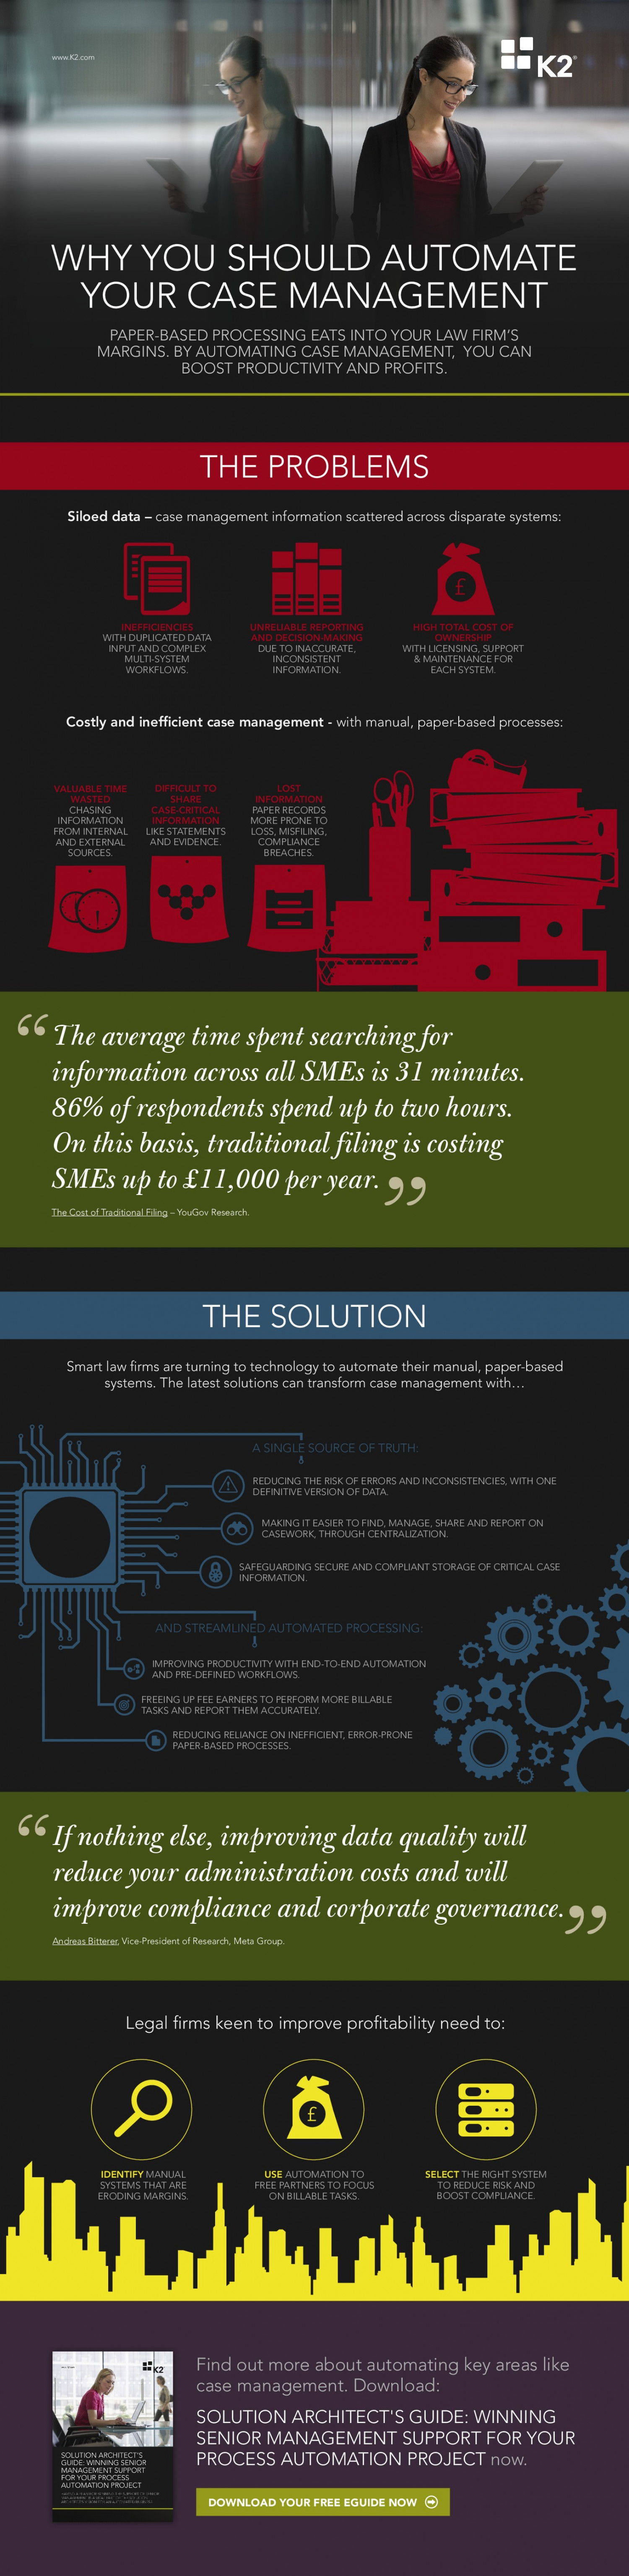 Why You Should Automate Your Case Management Infographic